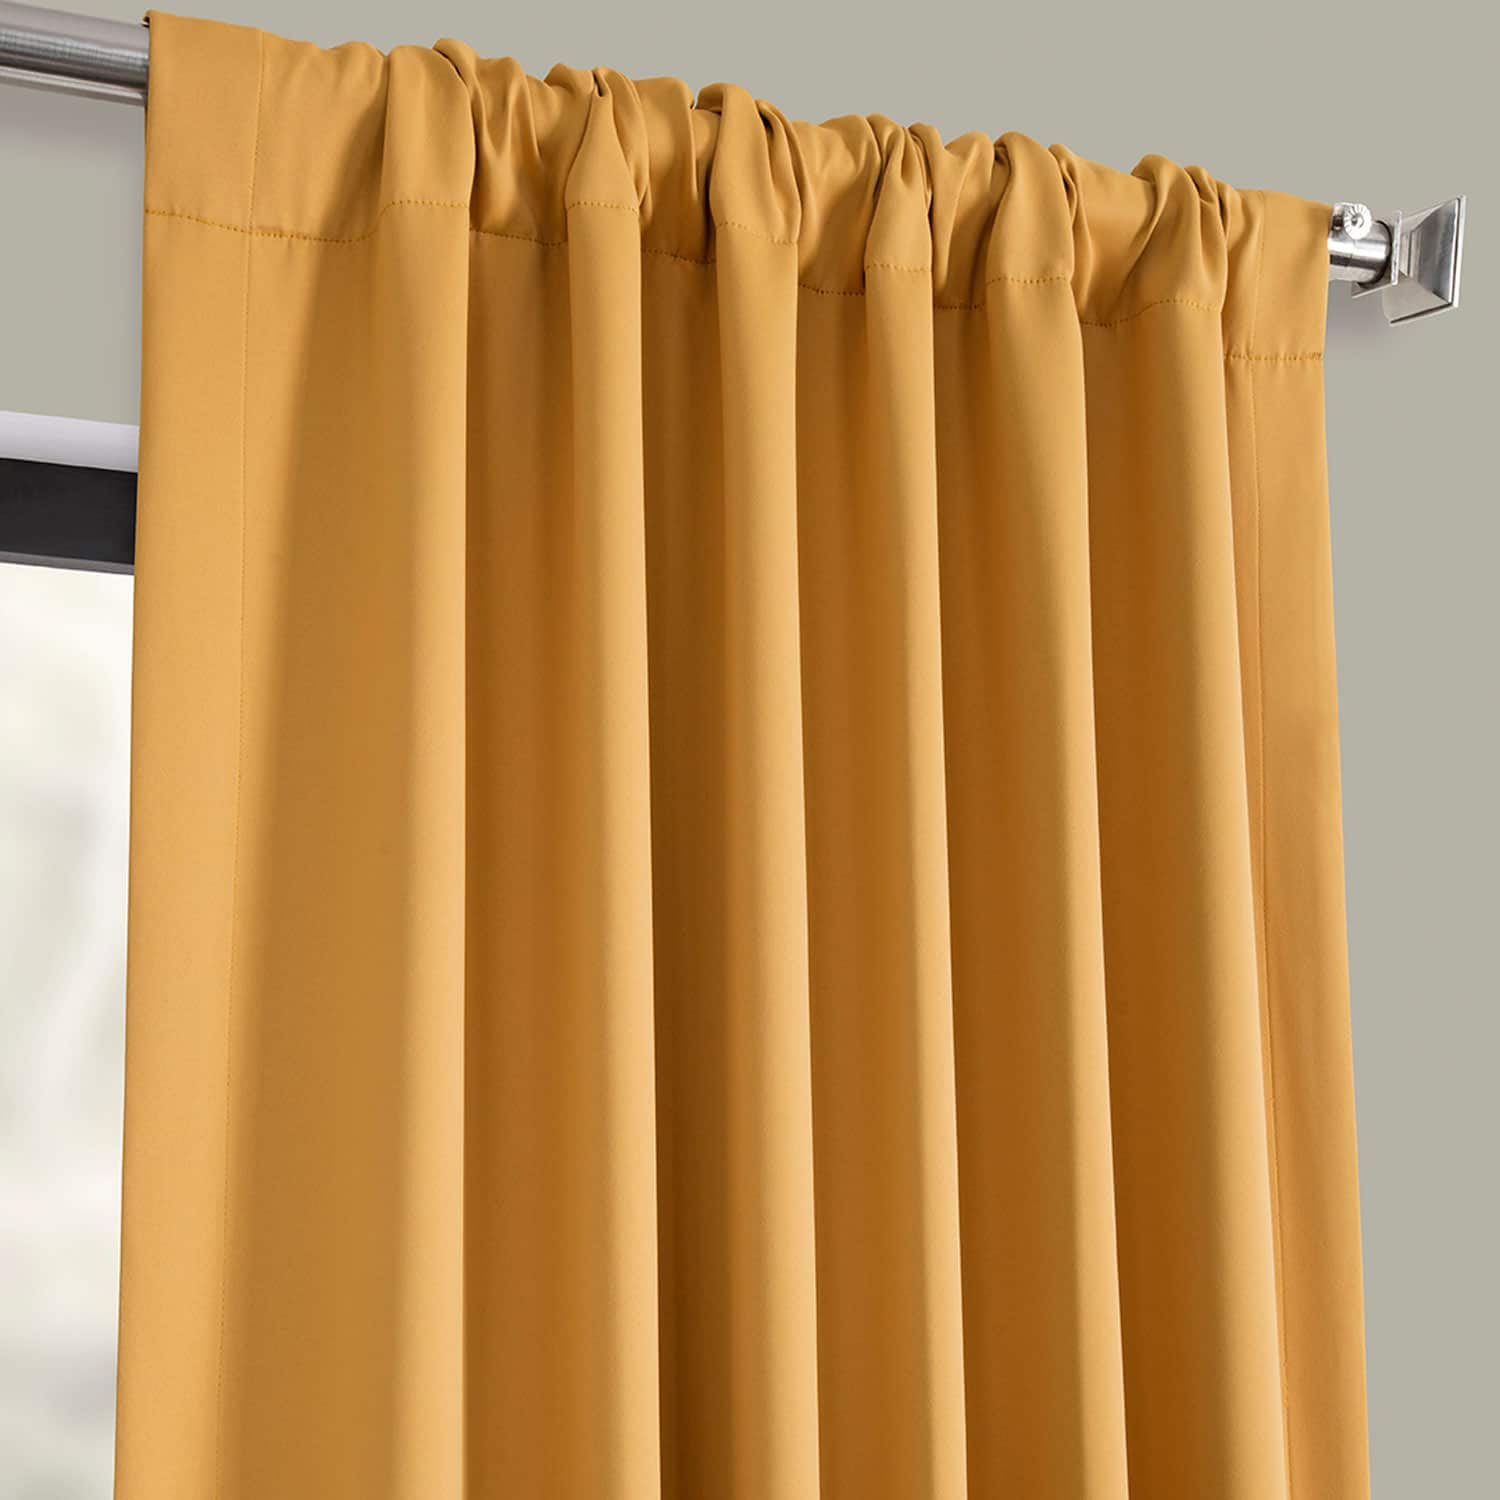 Marigold Blackout Room Darkening Curtain